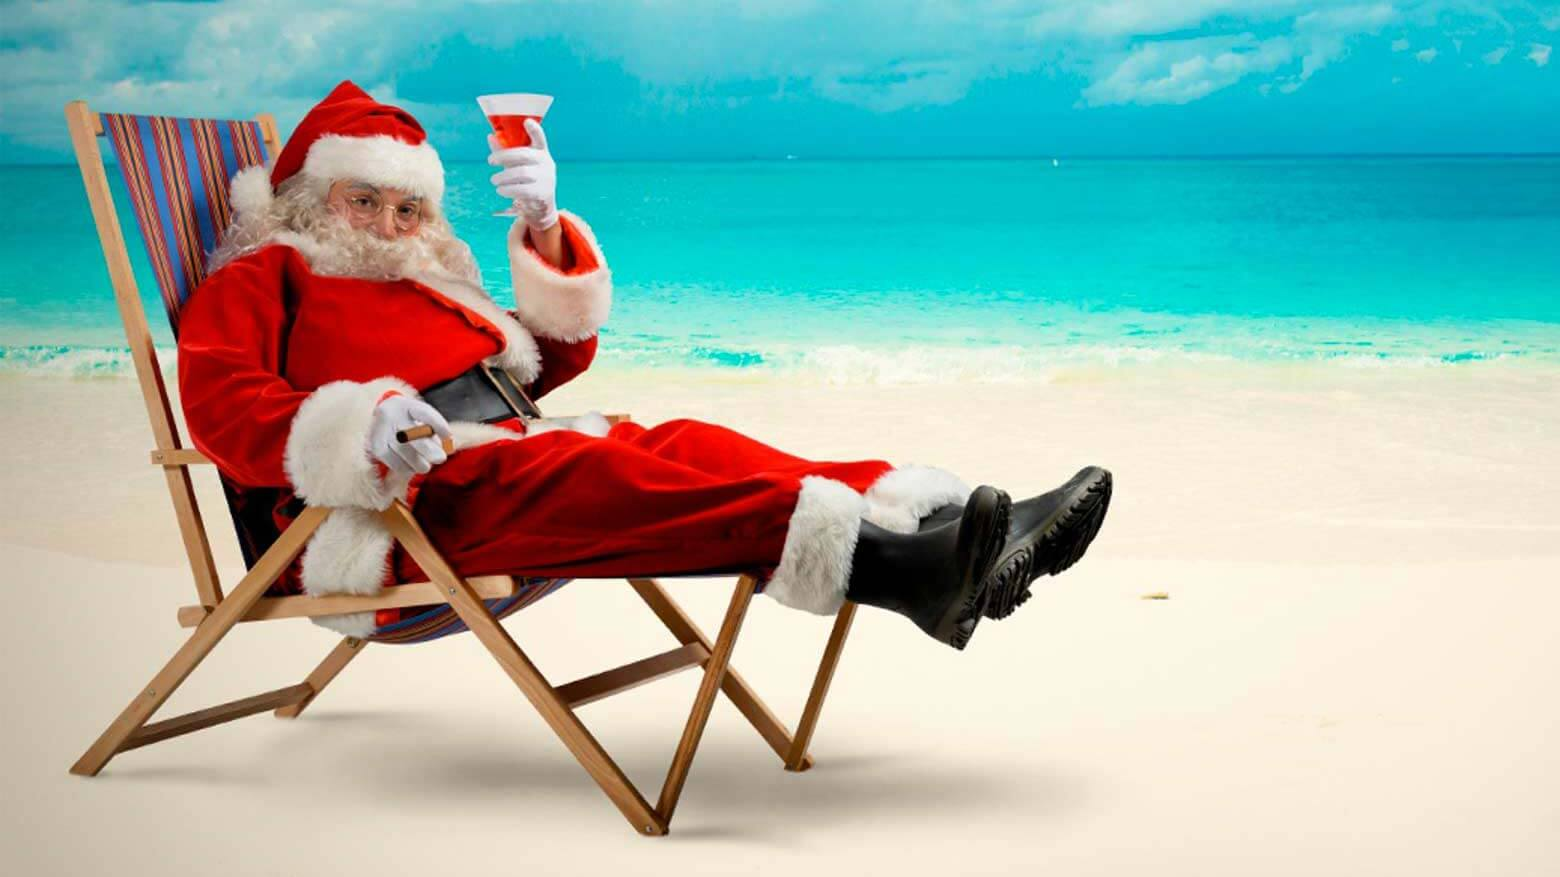 Father Christmas on a beach sitting in a deckchair